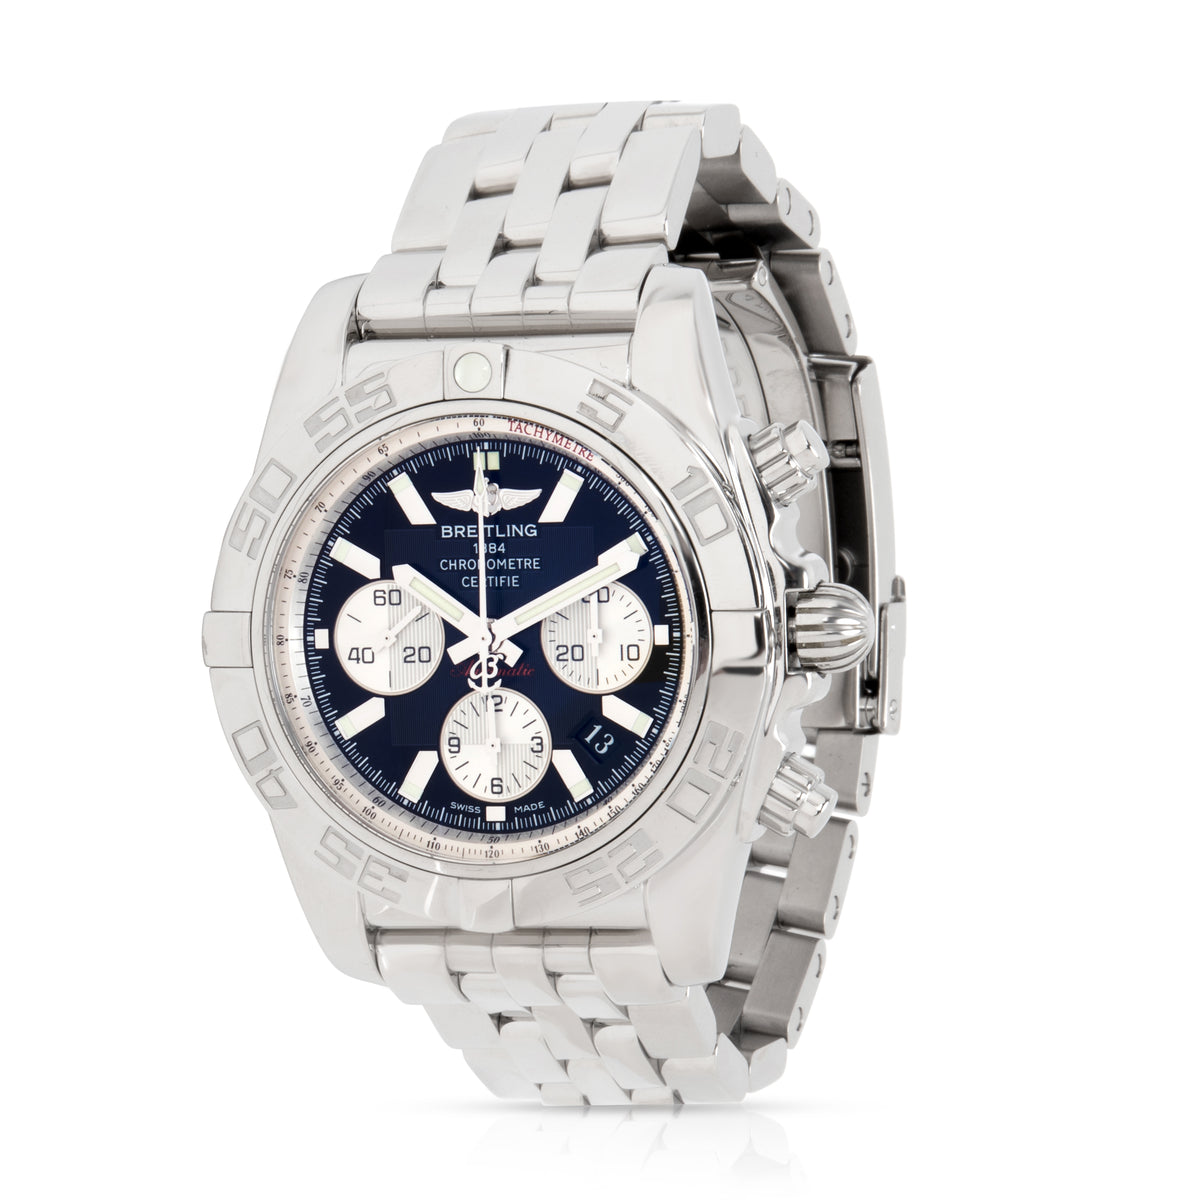 Breitling Chronomat AB011012/B967 Men's Watch in  Stainless Steel